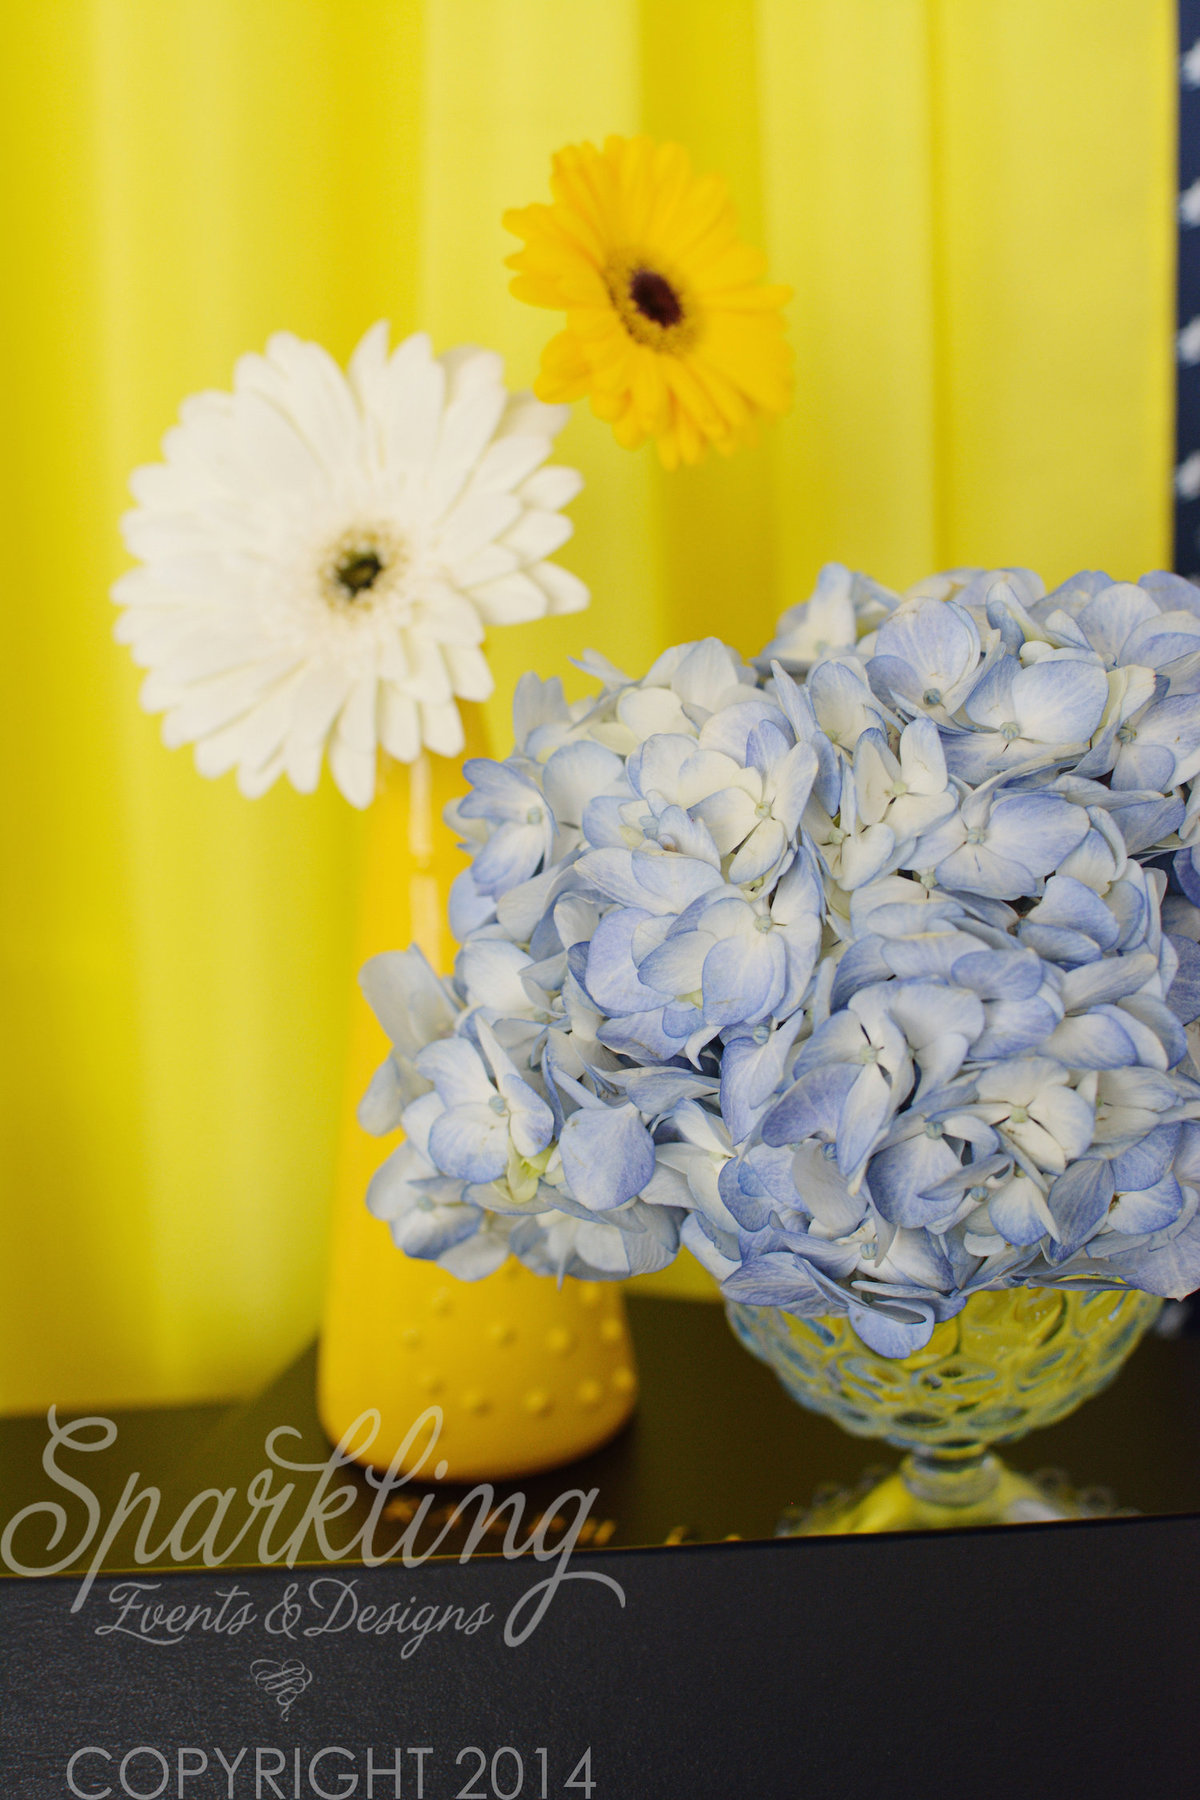 Sparkling Events Designs - Yellow White and Blue Flower Arrangements